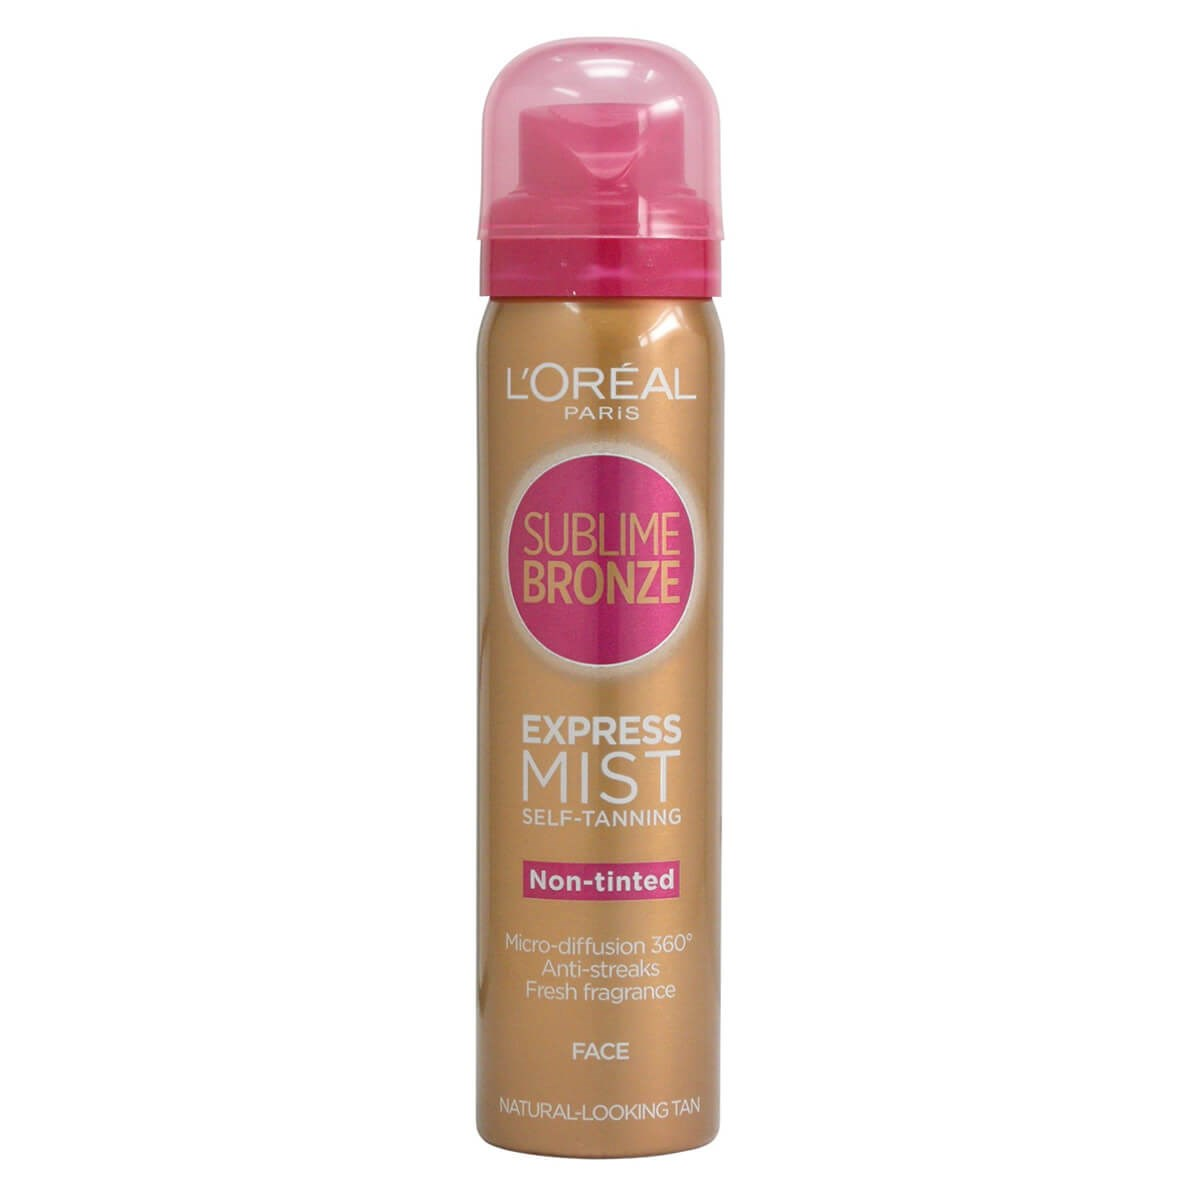 L'Oreal Paris Sublime Bronze Express Mist Self-Tanning For Face Non-tinted